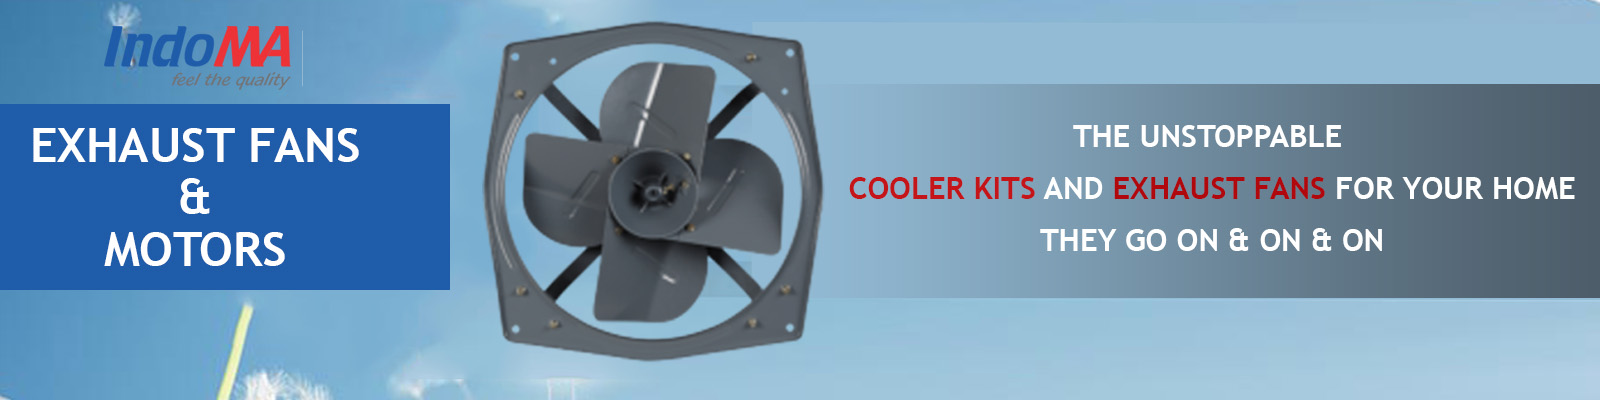 exhaust fans and motor